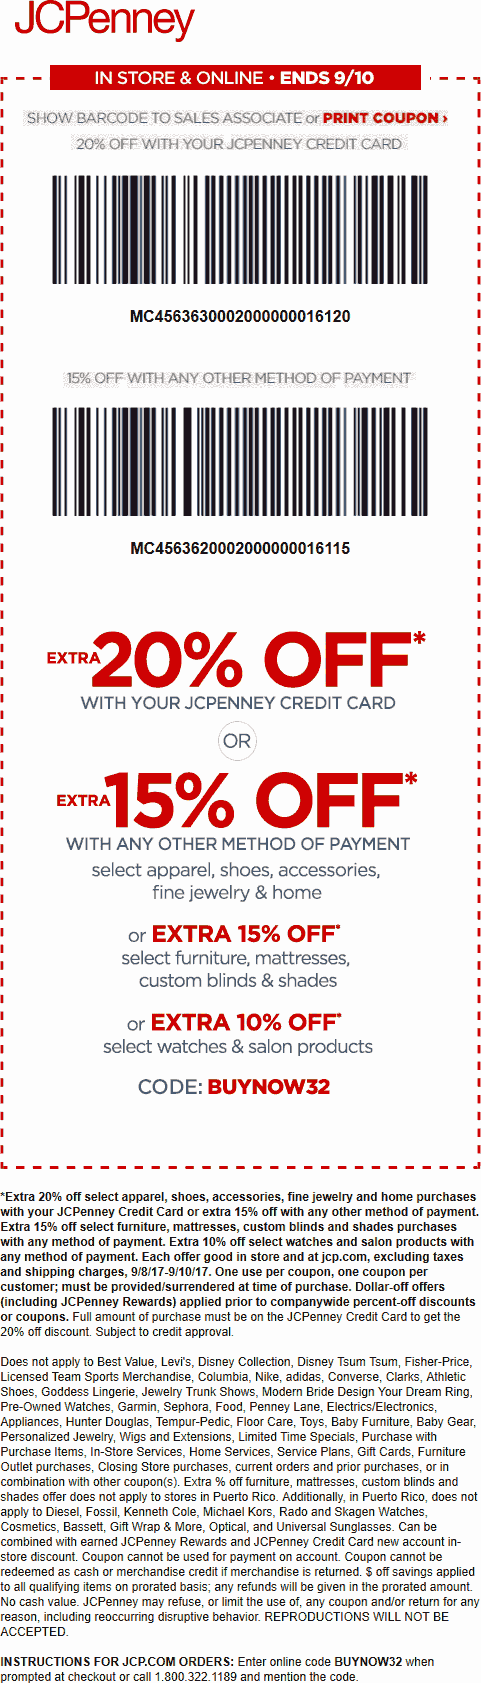 JCPenney Coupon October 2018 Extra 15% off at JCPenney, or online via promo code BUYNOW32 & 25% off $100 via SHOP34